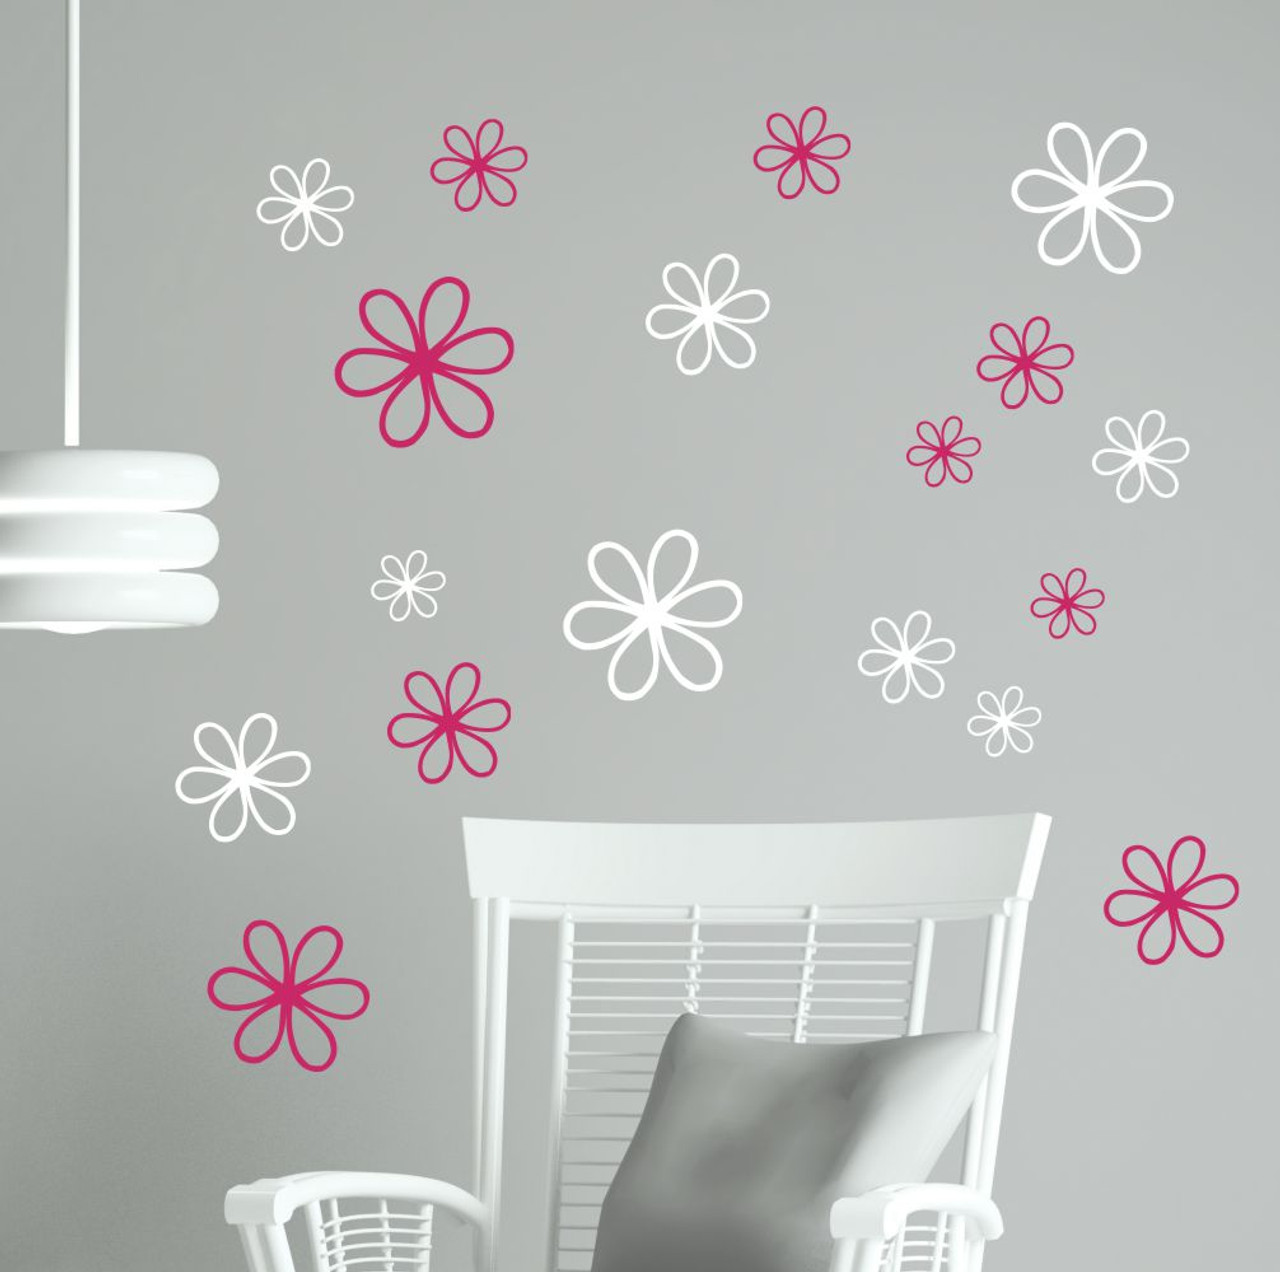 2-Color Daisy Floral Wall Decal package, 16pc